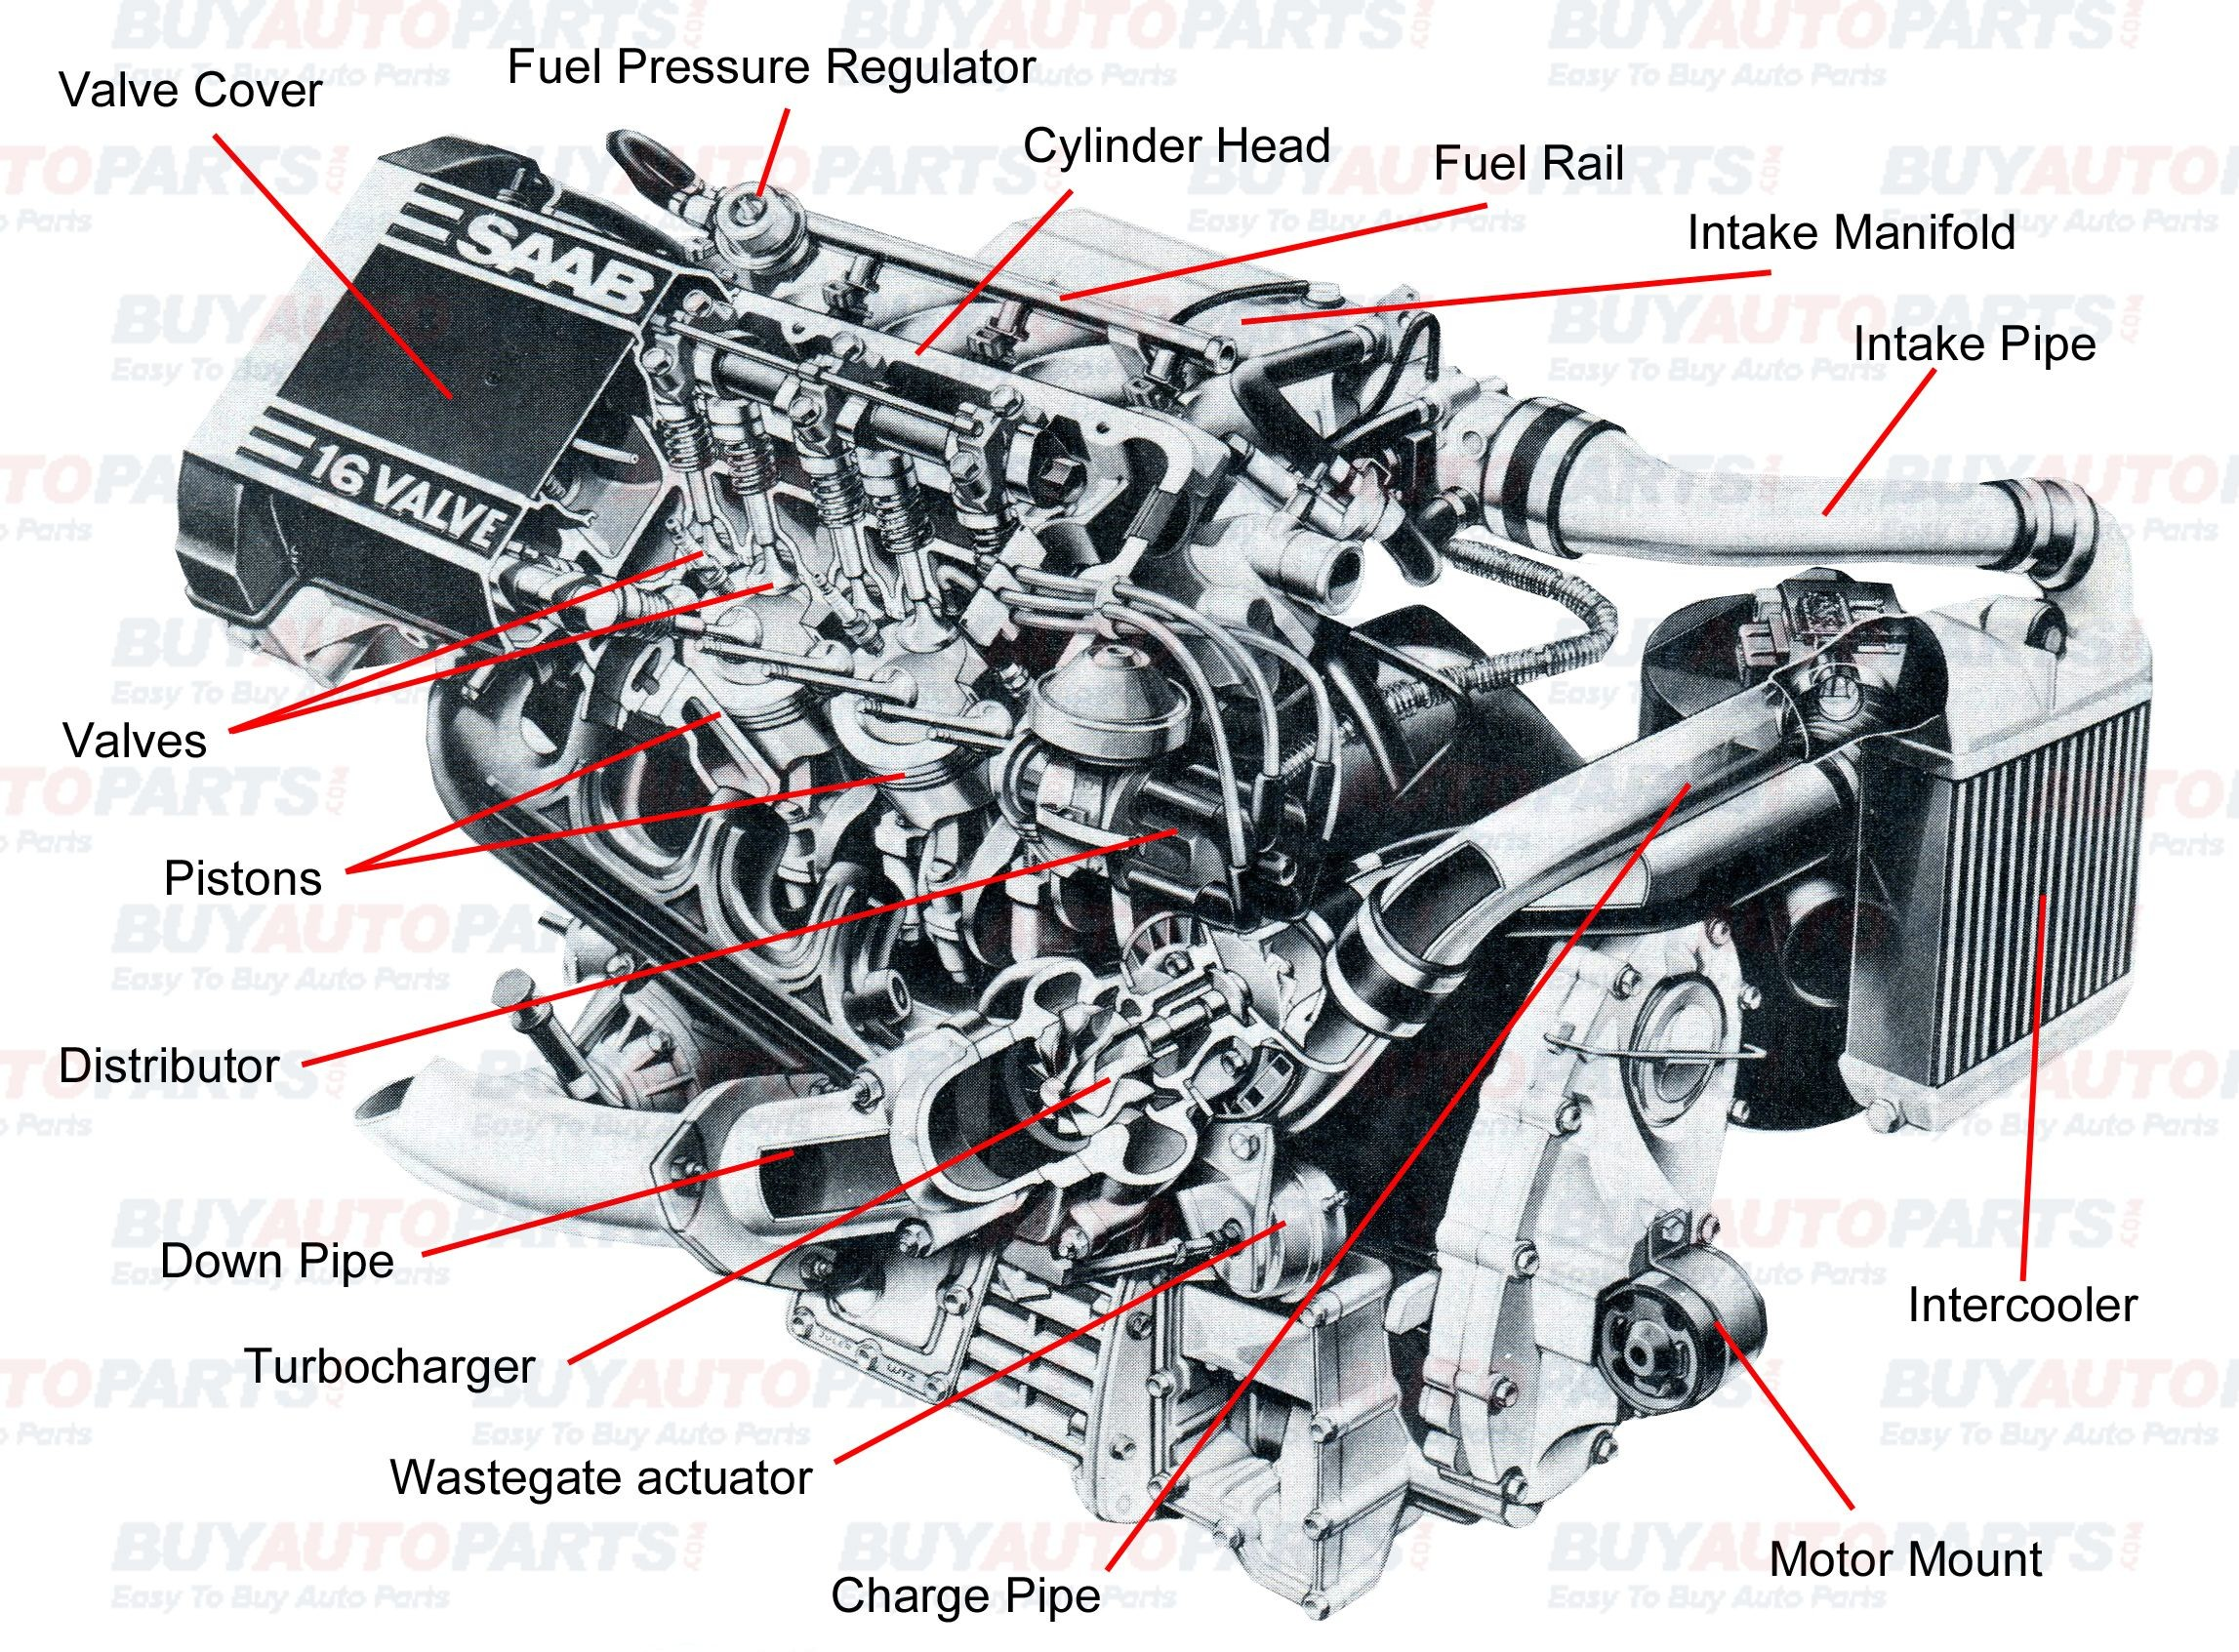 Car Frame Diagram Pin by Jimmiejanet Testellamwfz On What Does An Engine with Of Car Frame Diagram